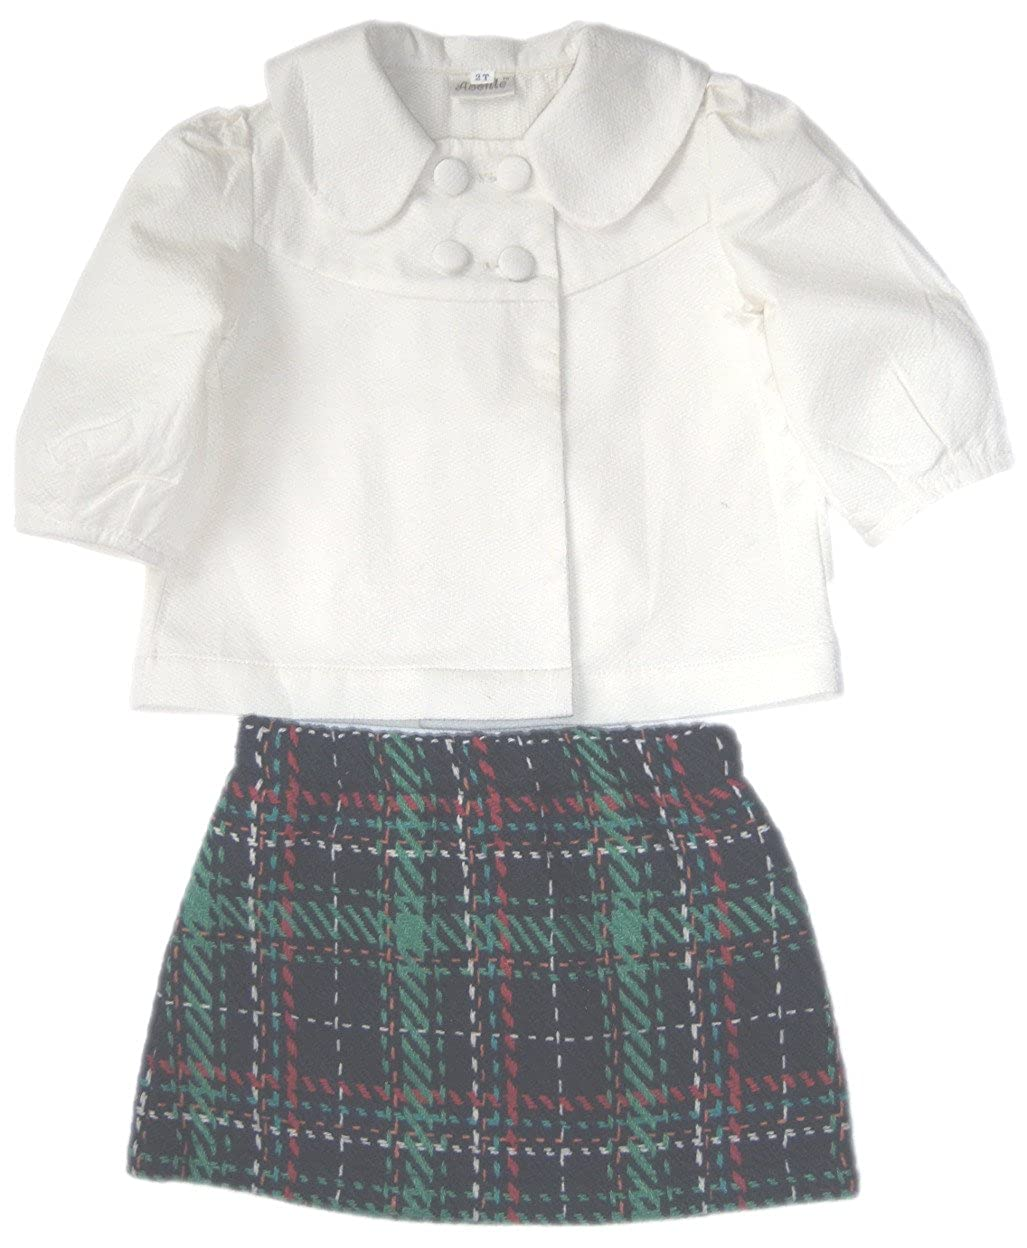 Green Checked Skirt Size:2T Abeille Girls White Shirt